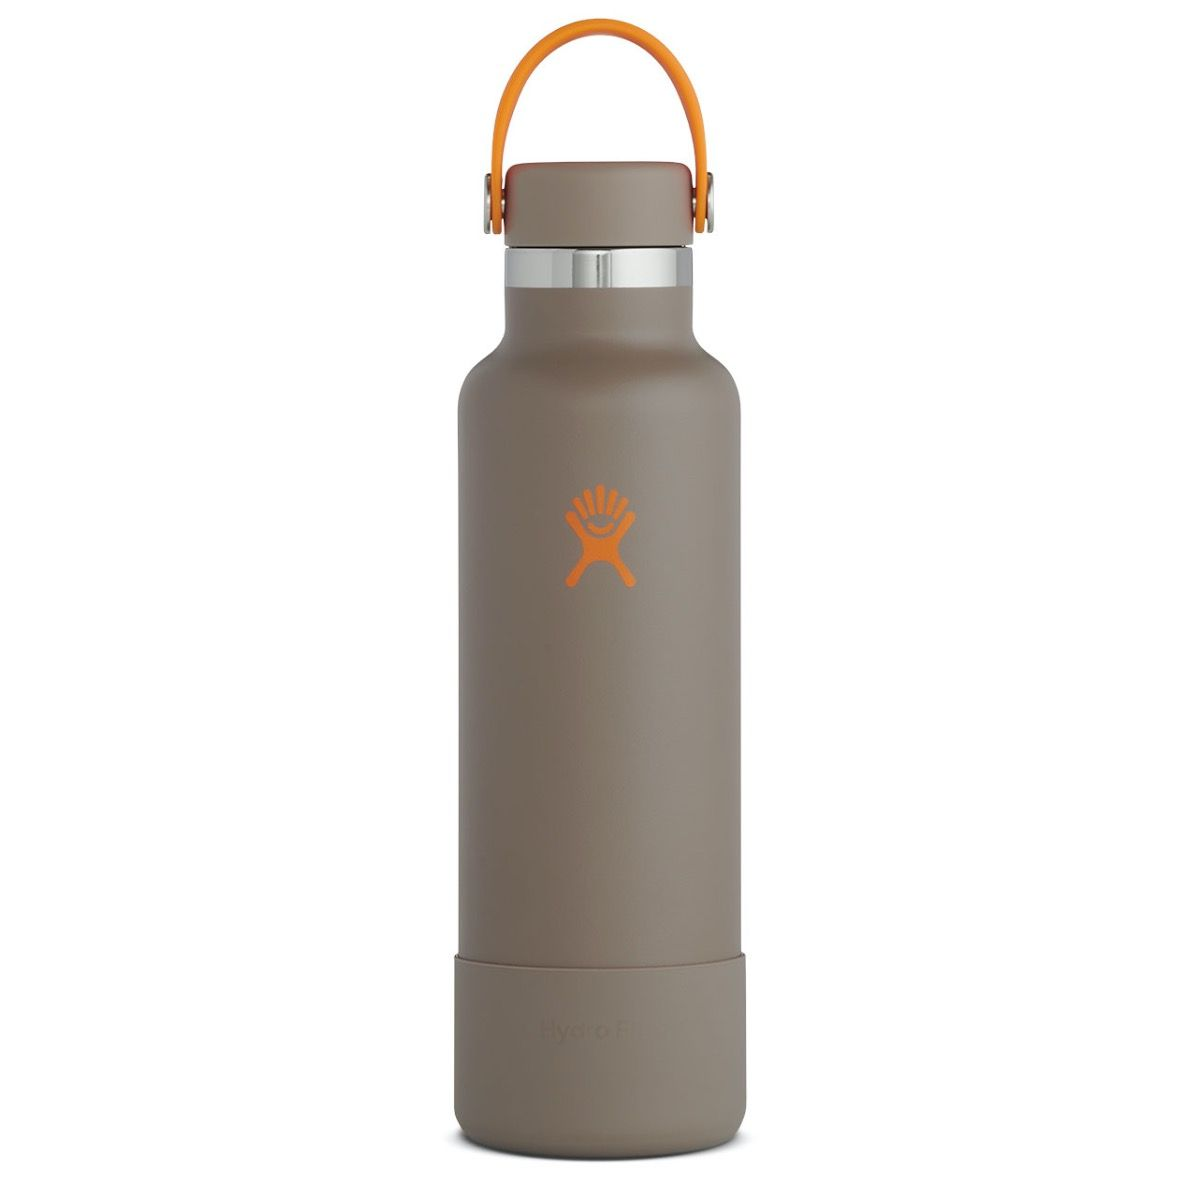 gray water bottle with orange logo and handle